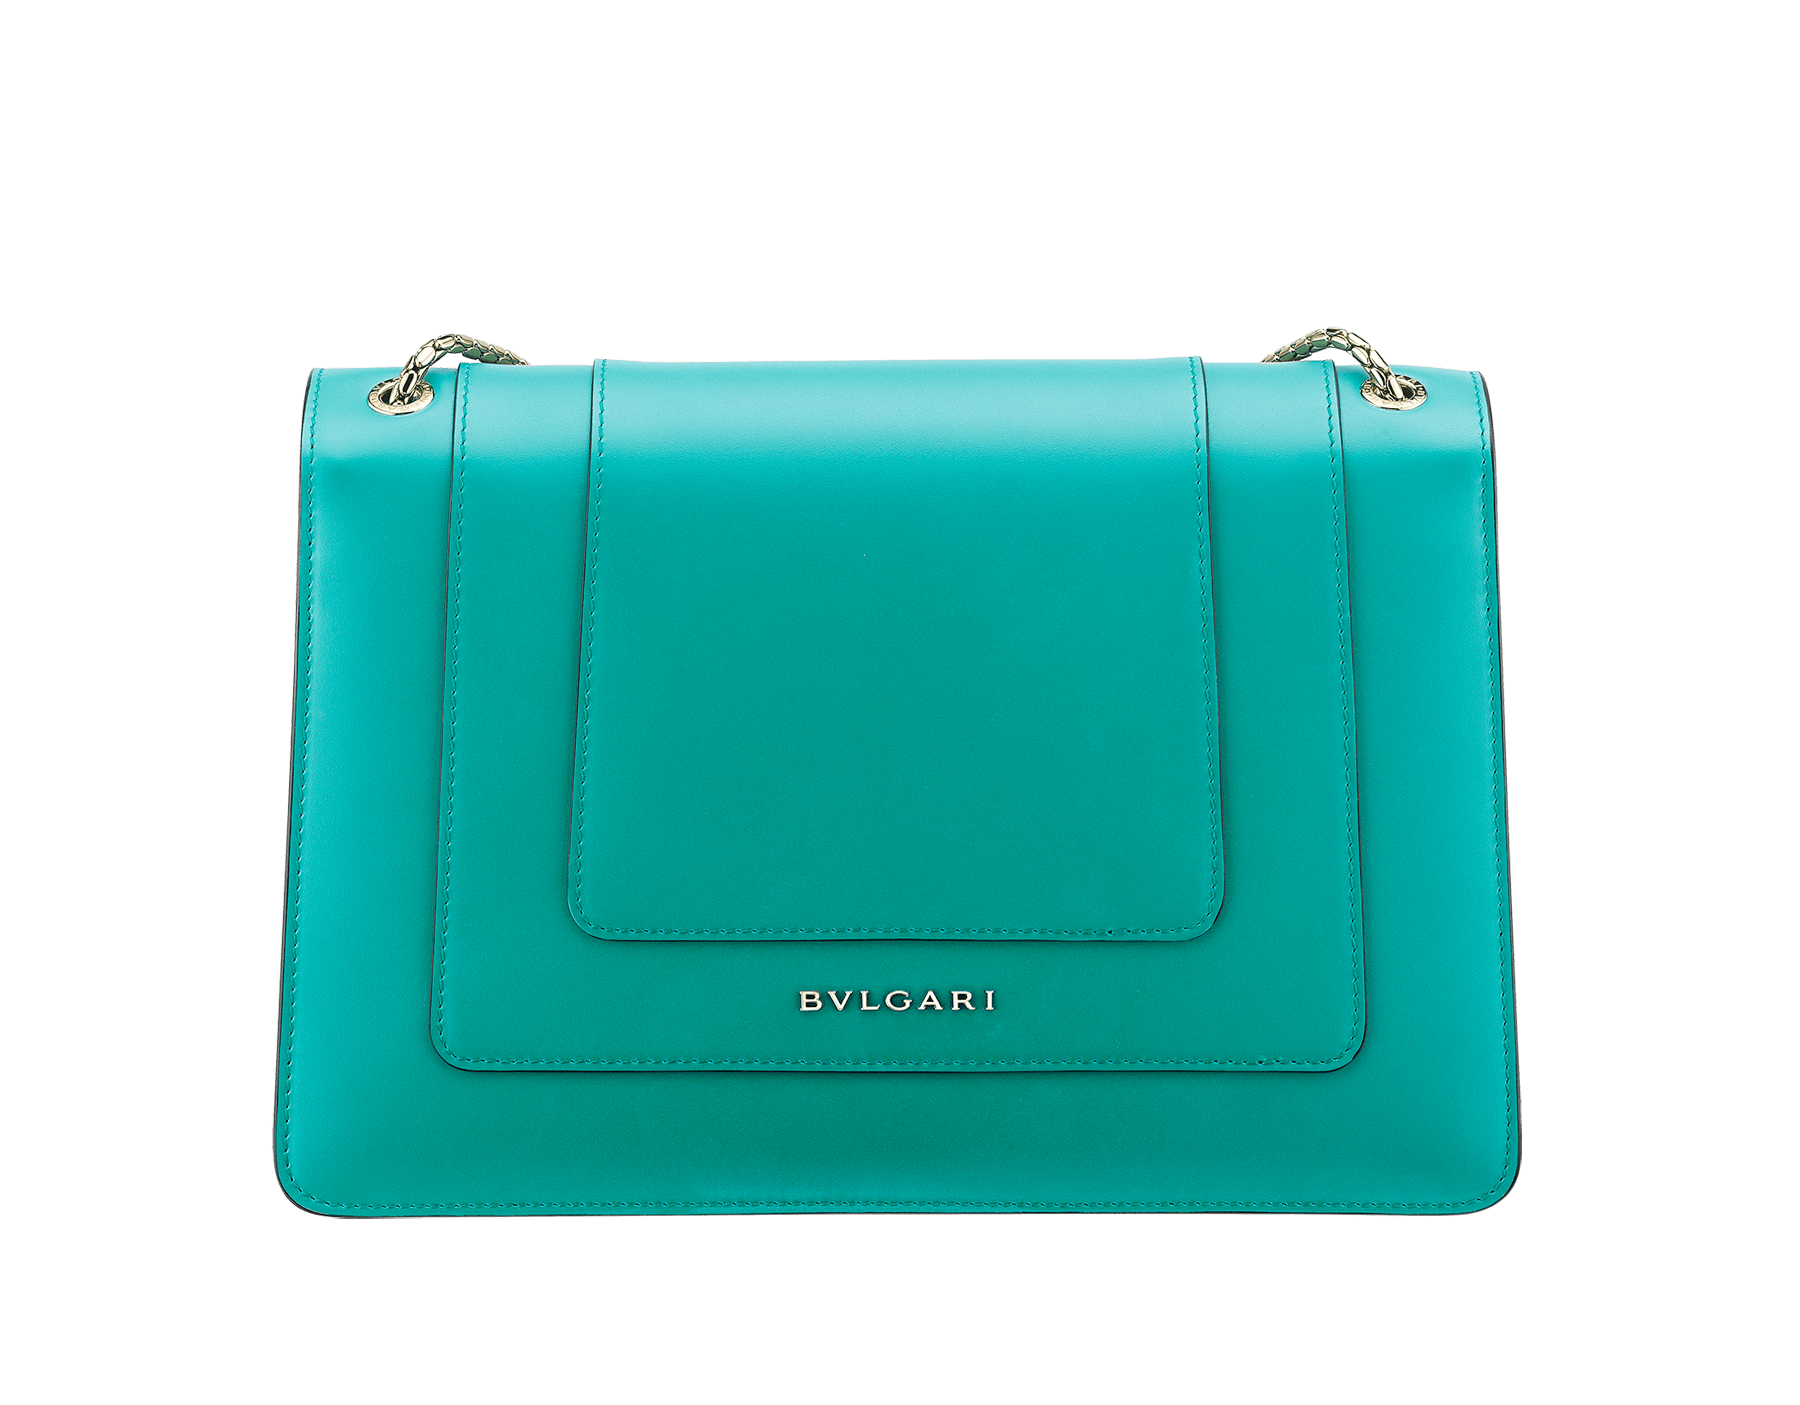 Serpenti Forever shoulder bag in tropical turquoise smooth calf leather. Snakehead closure in light gold plated brass decorated with black and white enamel, and green malachite eyes. 287931 image 3